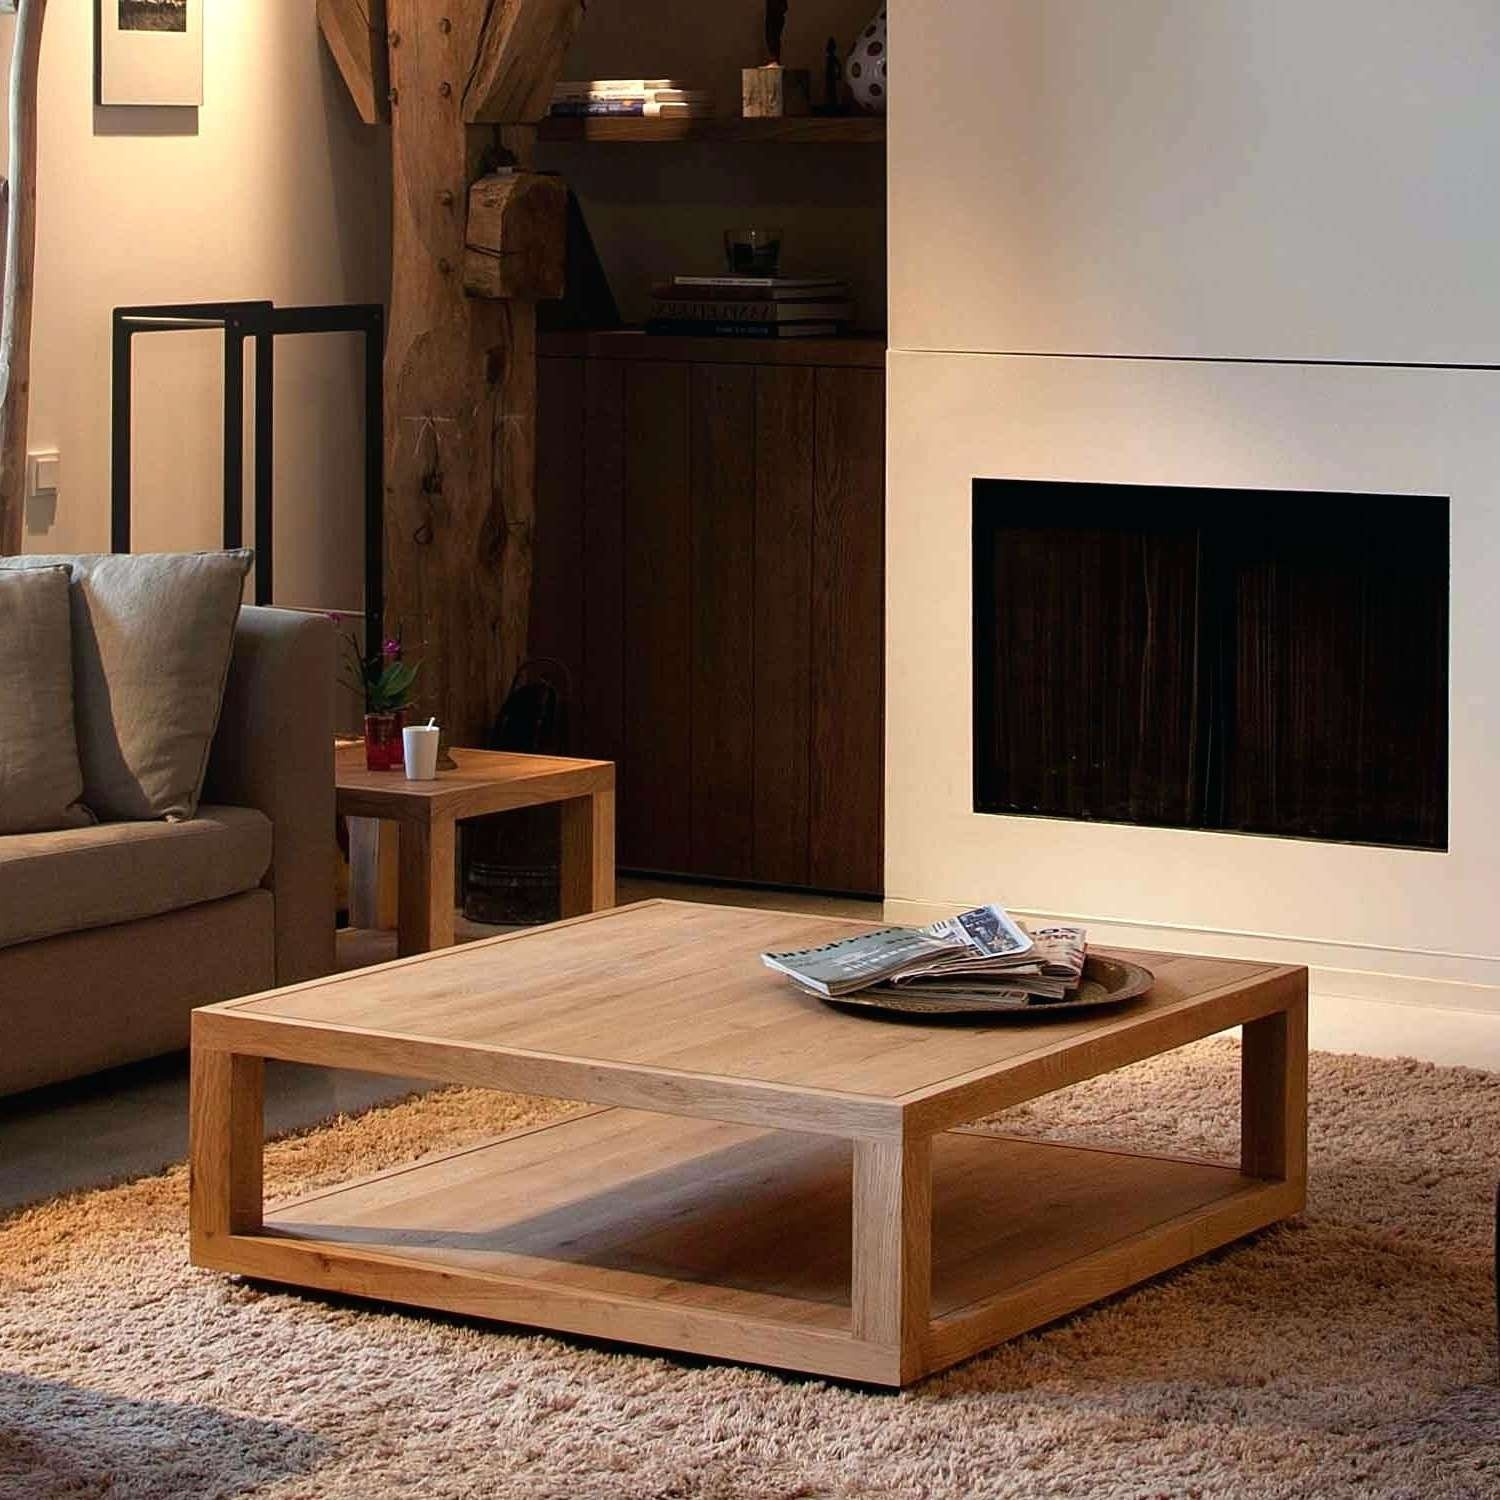 Best And Newest Low Coffee Tables With Drawers Throughout Delightful Low Coffee Table With Drawers Designs Excellent (View 18 of 20)